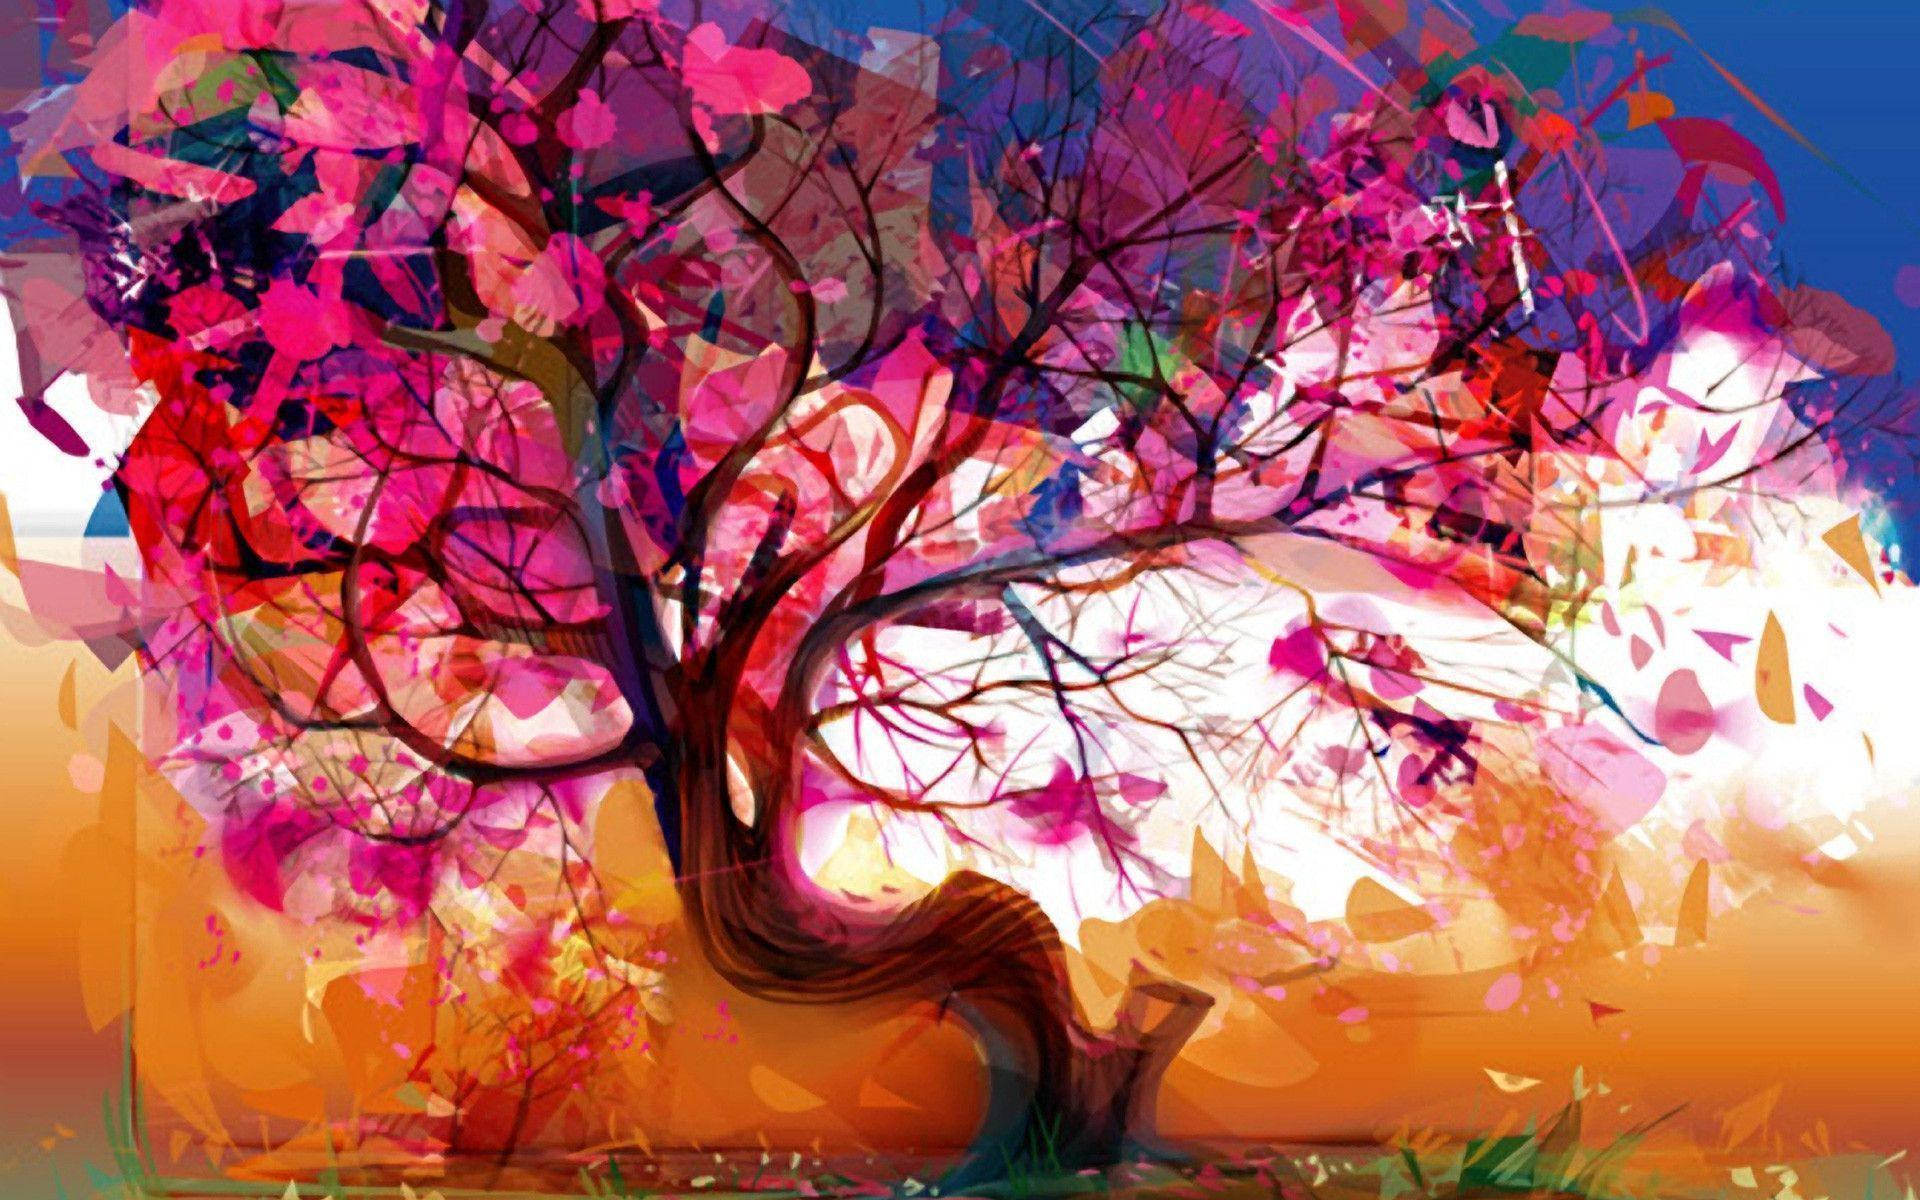 Cool Abstract Tree Background 1920x 1200 Wallpaperhere Wallpaper